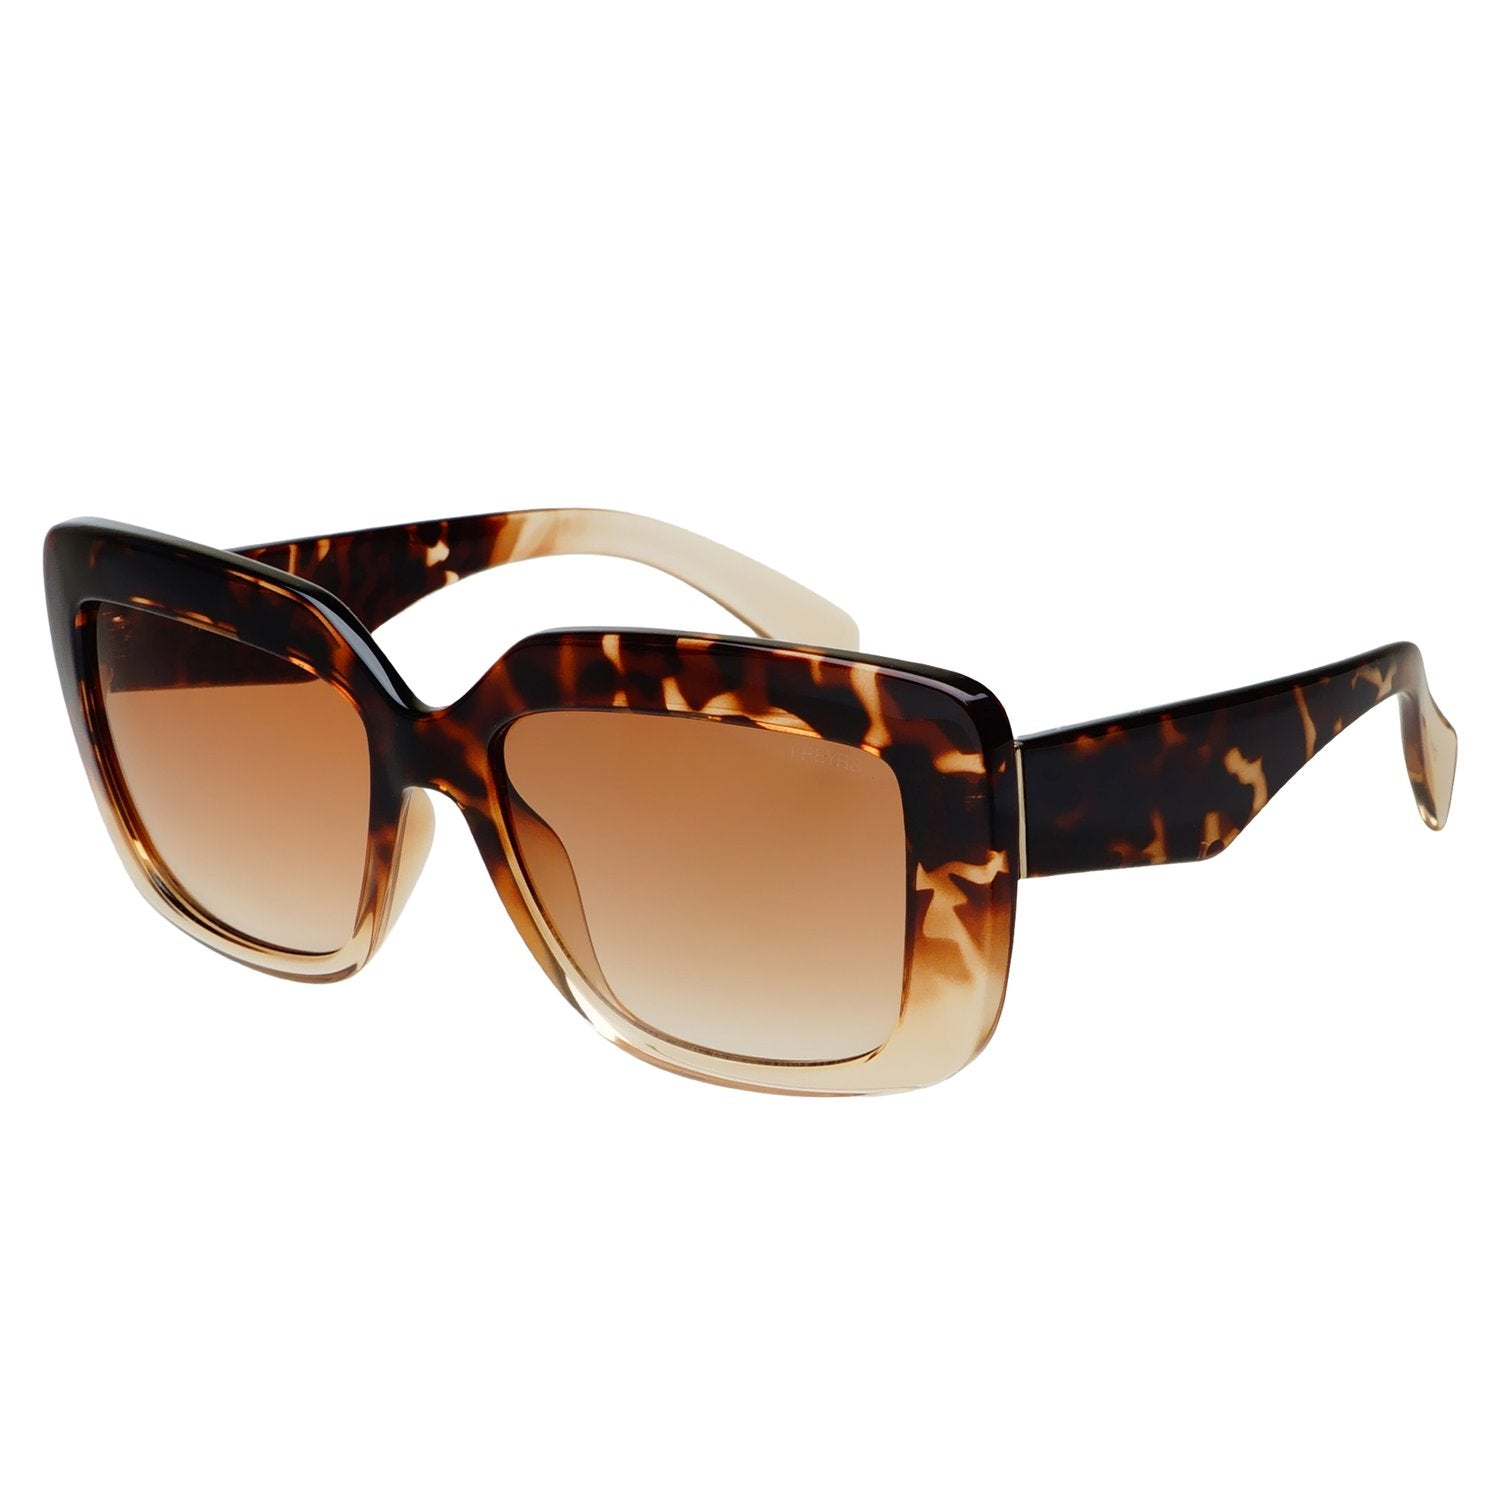 TRIBECA SUNGLASSES